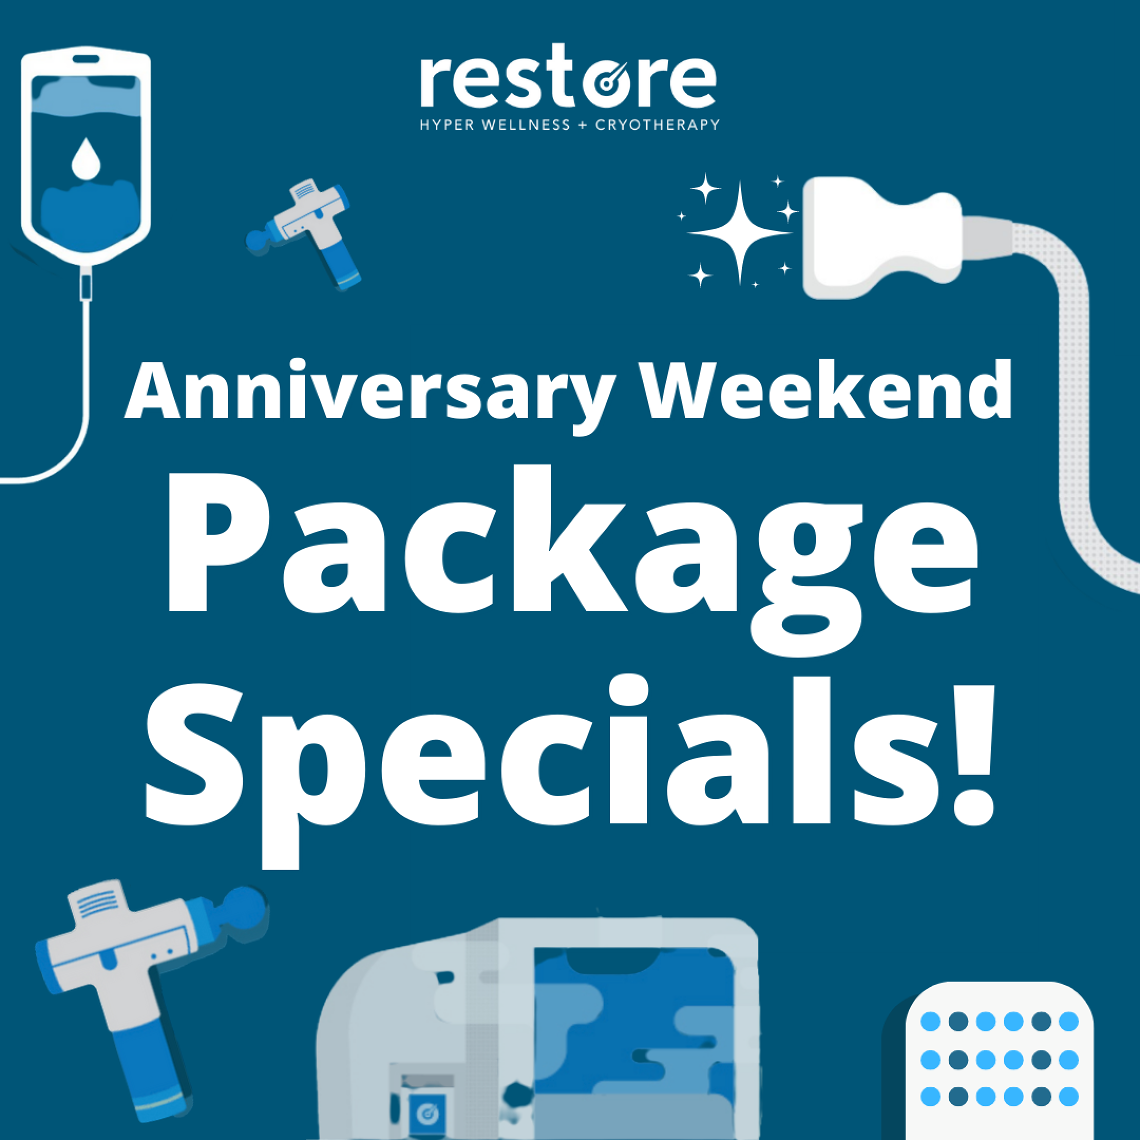 Package specials you won't want to miss out on! Image